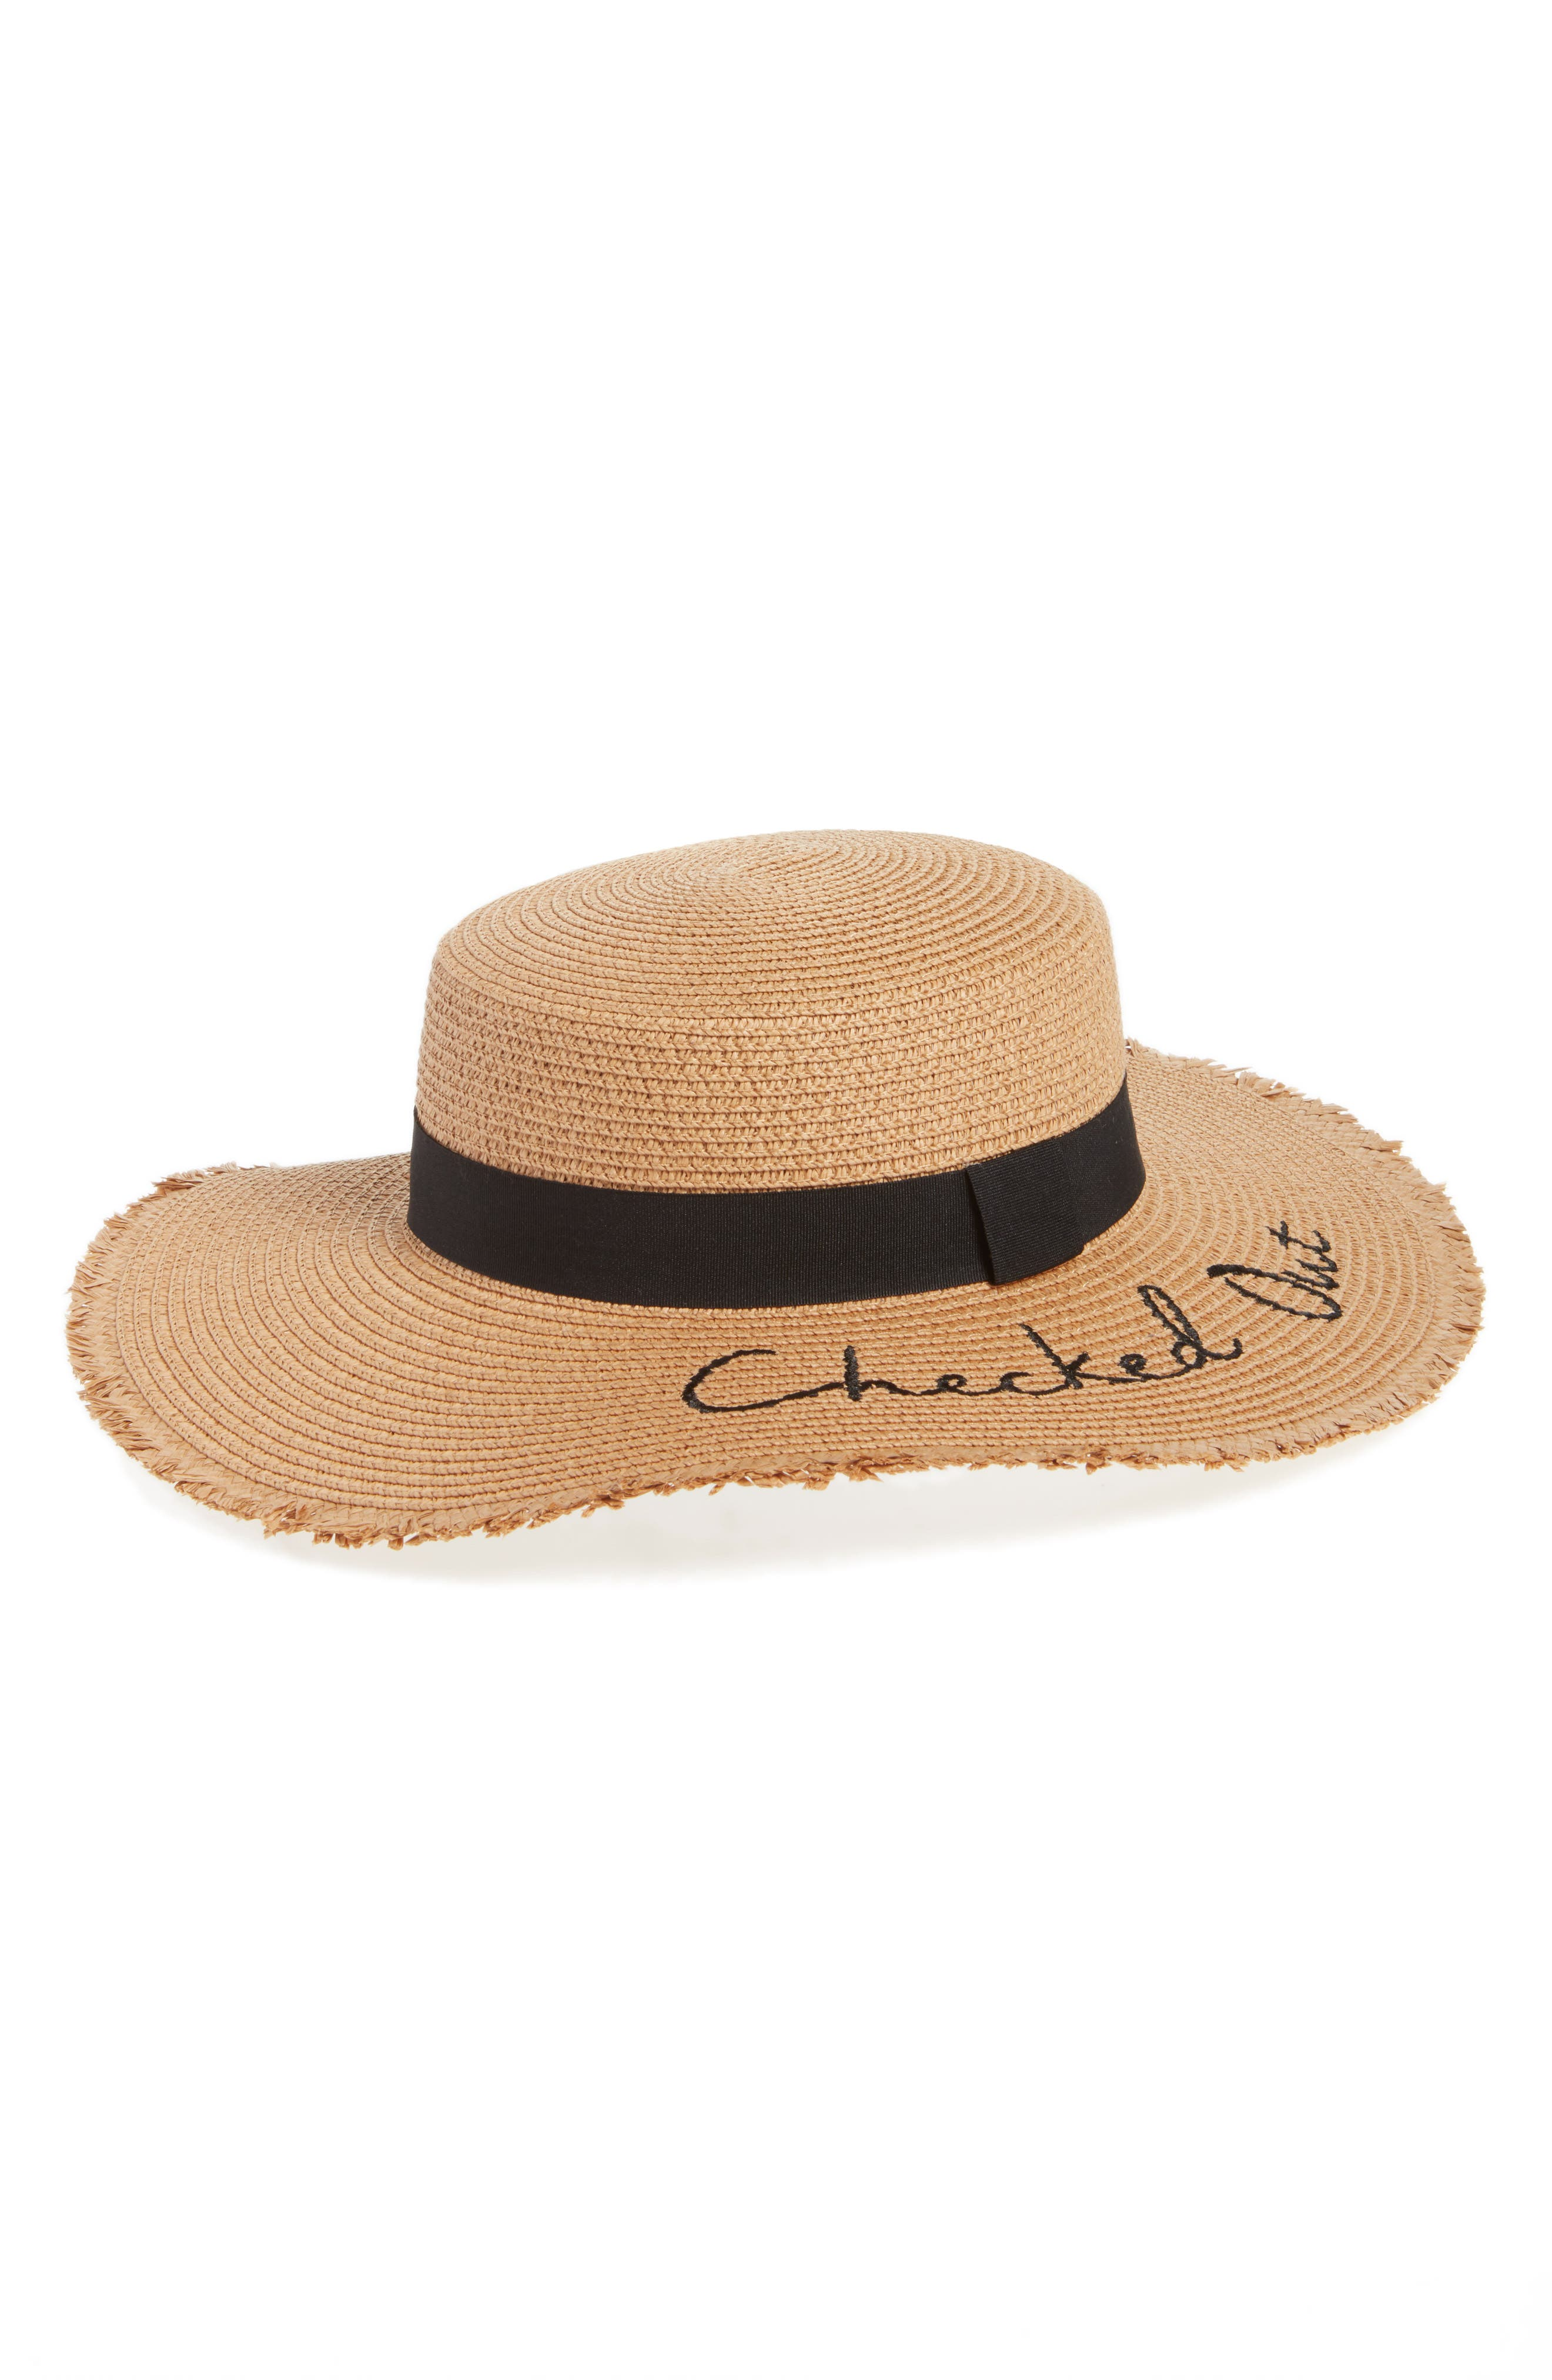 Verbiage Frayed Edge Straw Boater Hat,                         Main,                         color, 250